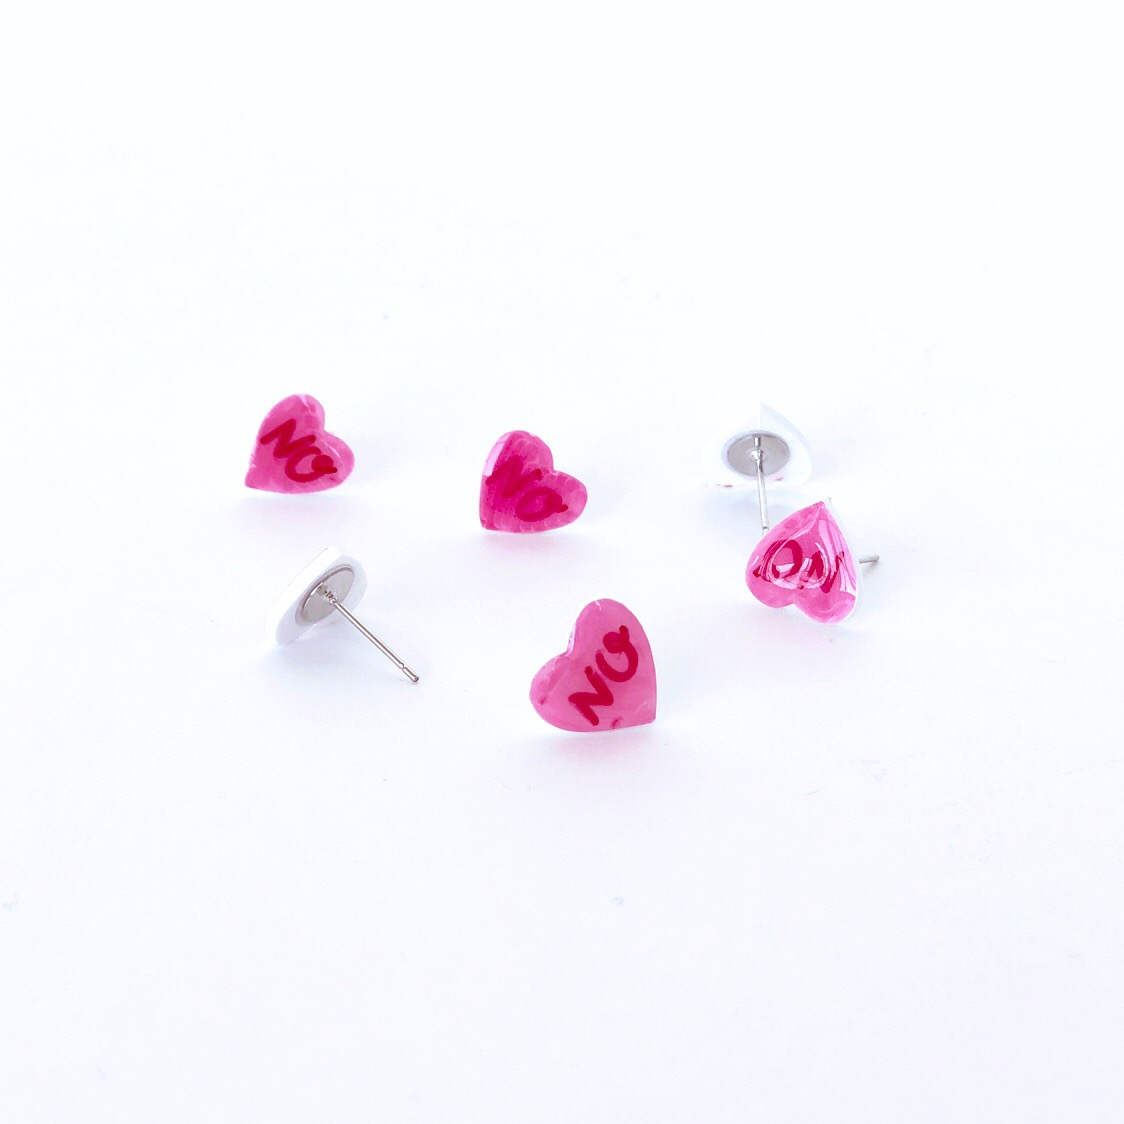 Conversation heart stud earrings.